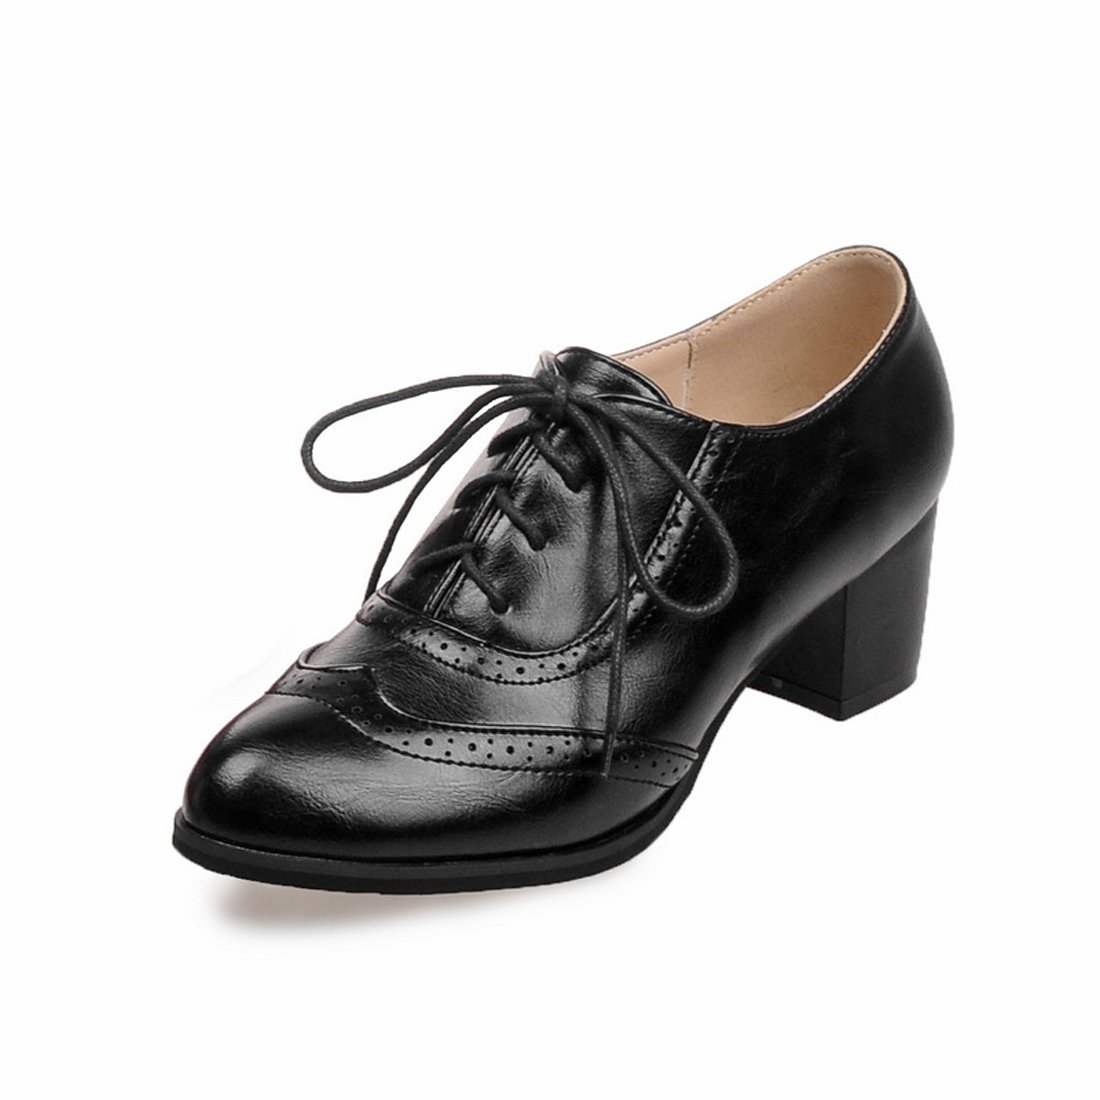 1920s Style Shoes Susanny Womens Shoe Classic Lace Up Dress Pumps Mid Heel Wingtip Saddle Oxfords Brogue Shoes $24.99 AT vintagedancer.com